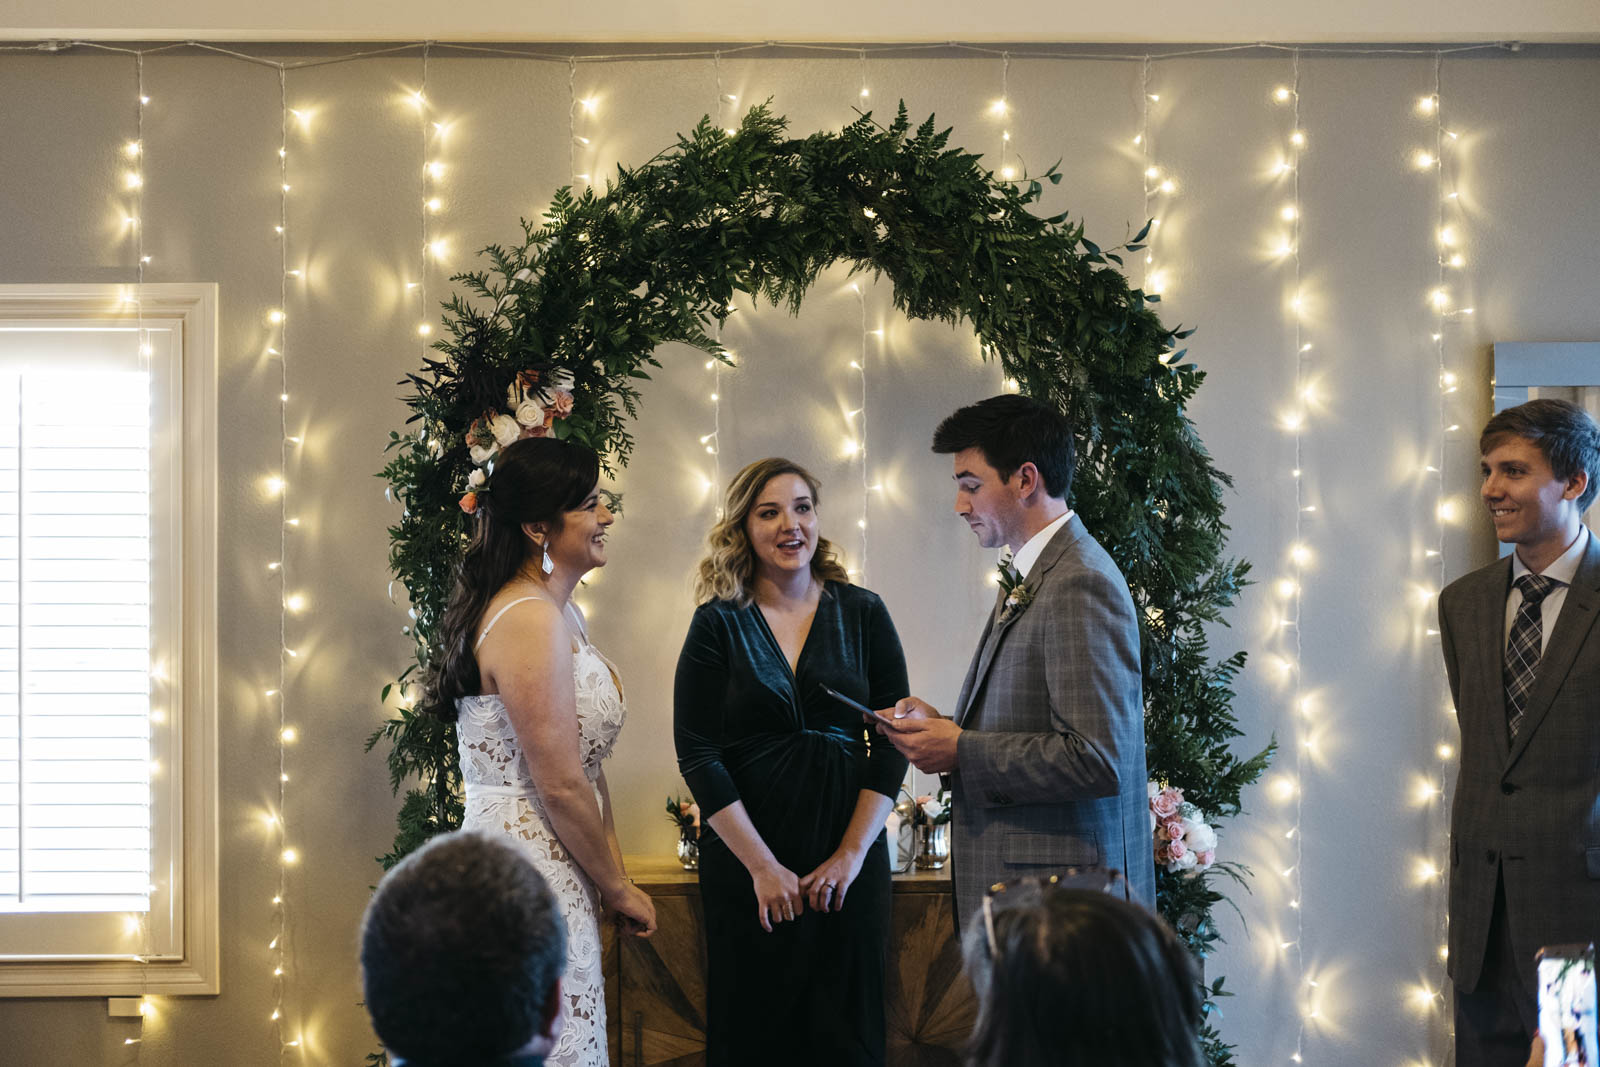 Groom reading vows at in-home ceremony on New Year's Day.